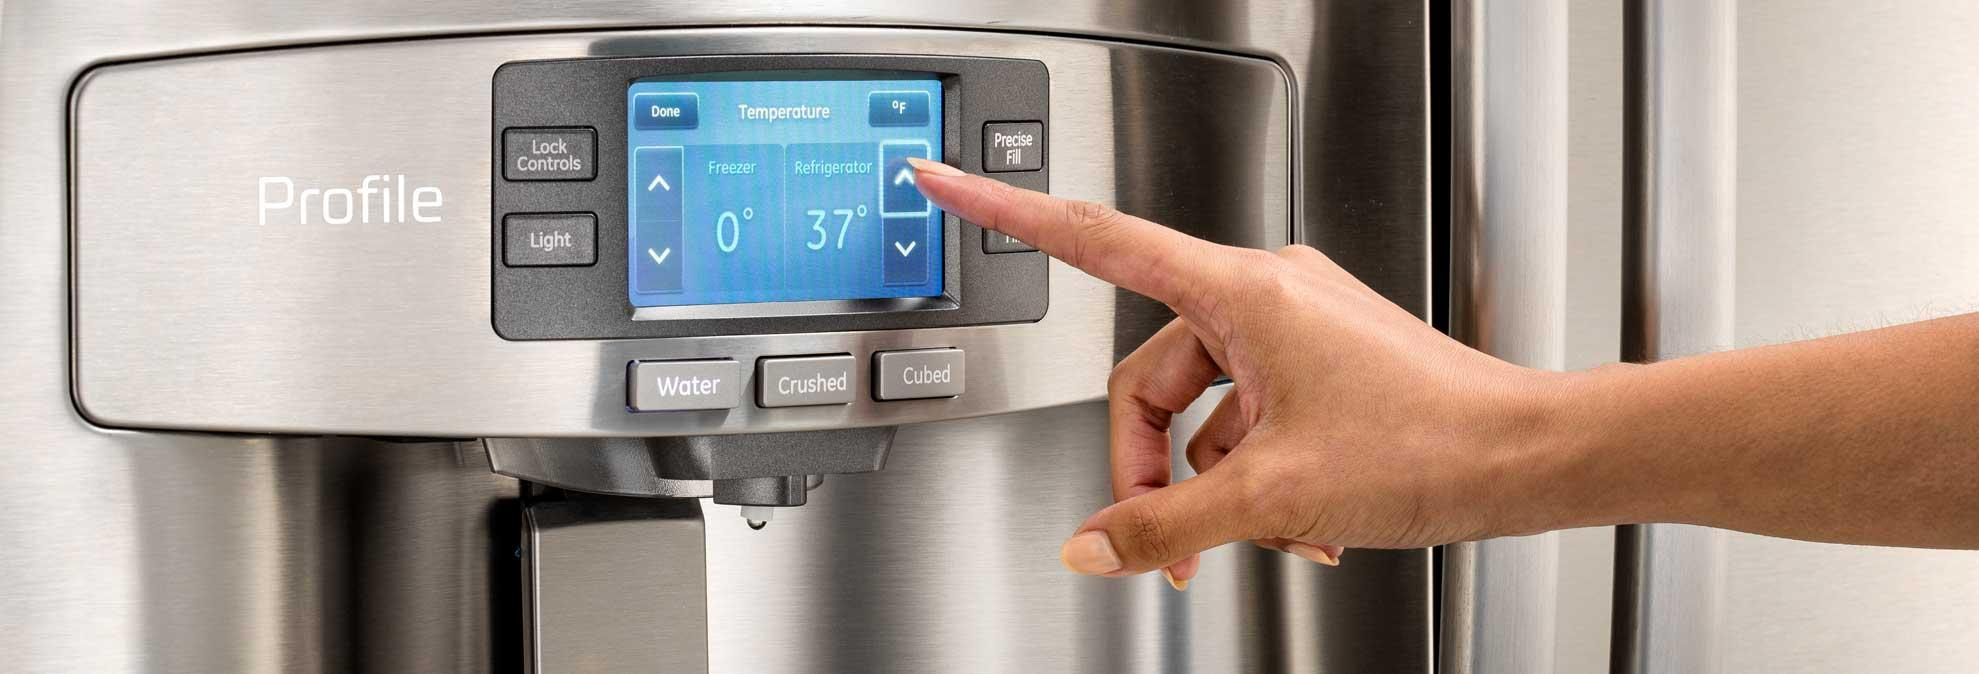 Best Refrigerator Temperature To Keep Food Fresh